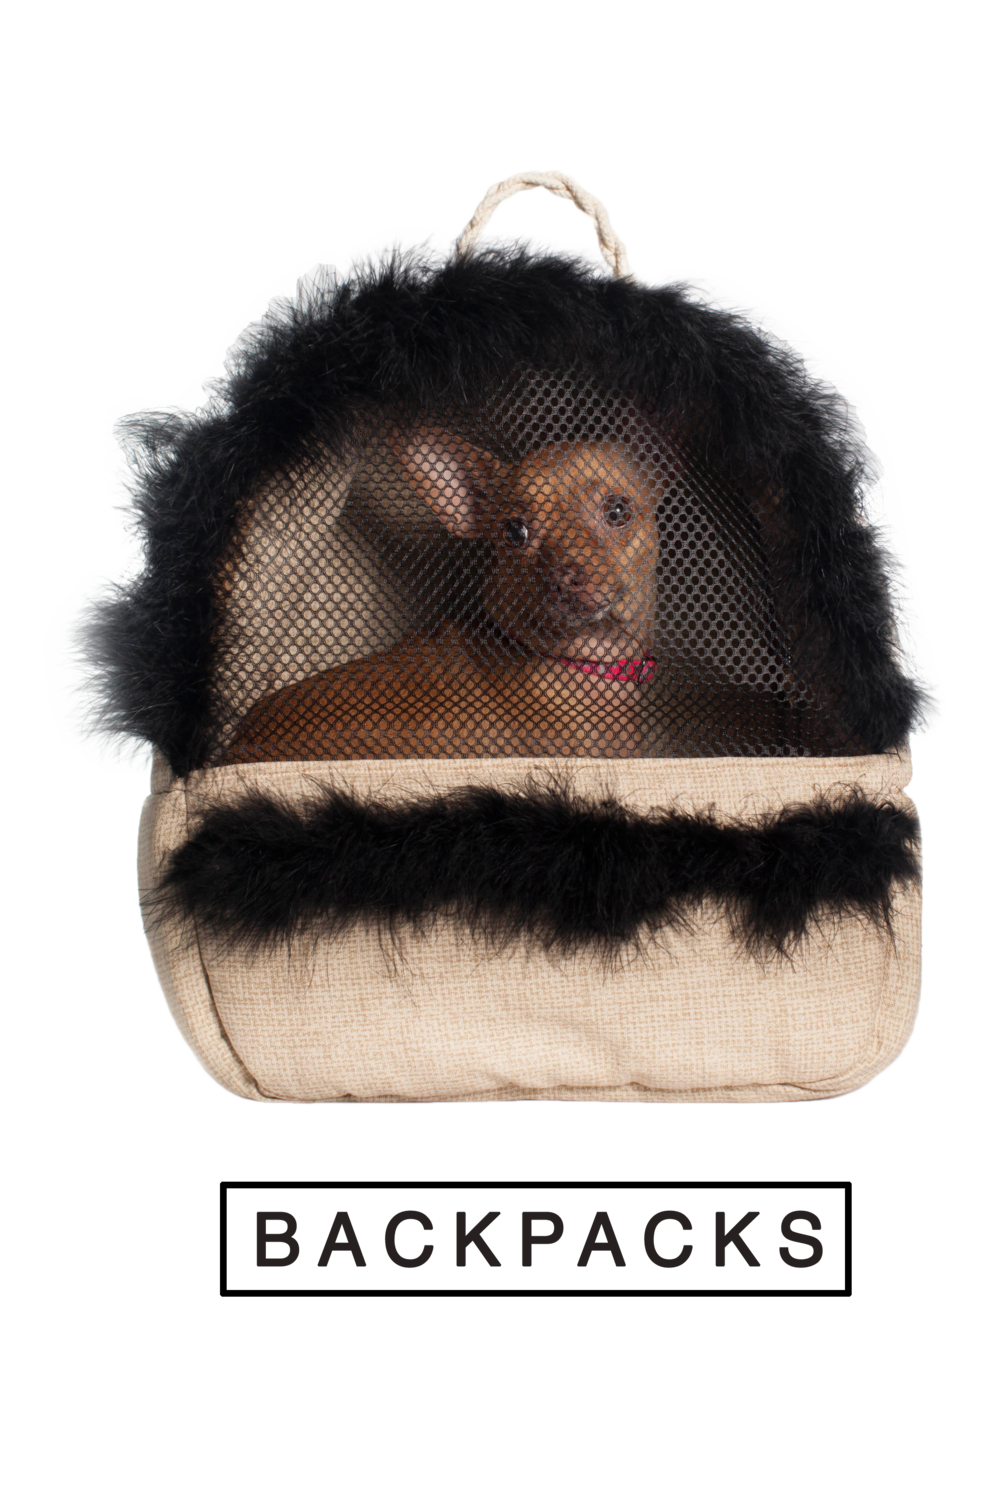 backpacks_homepage.png